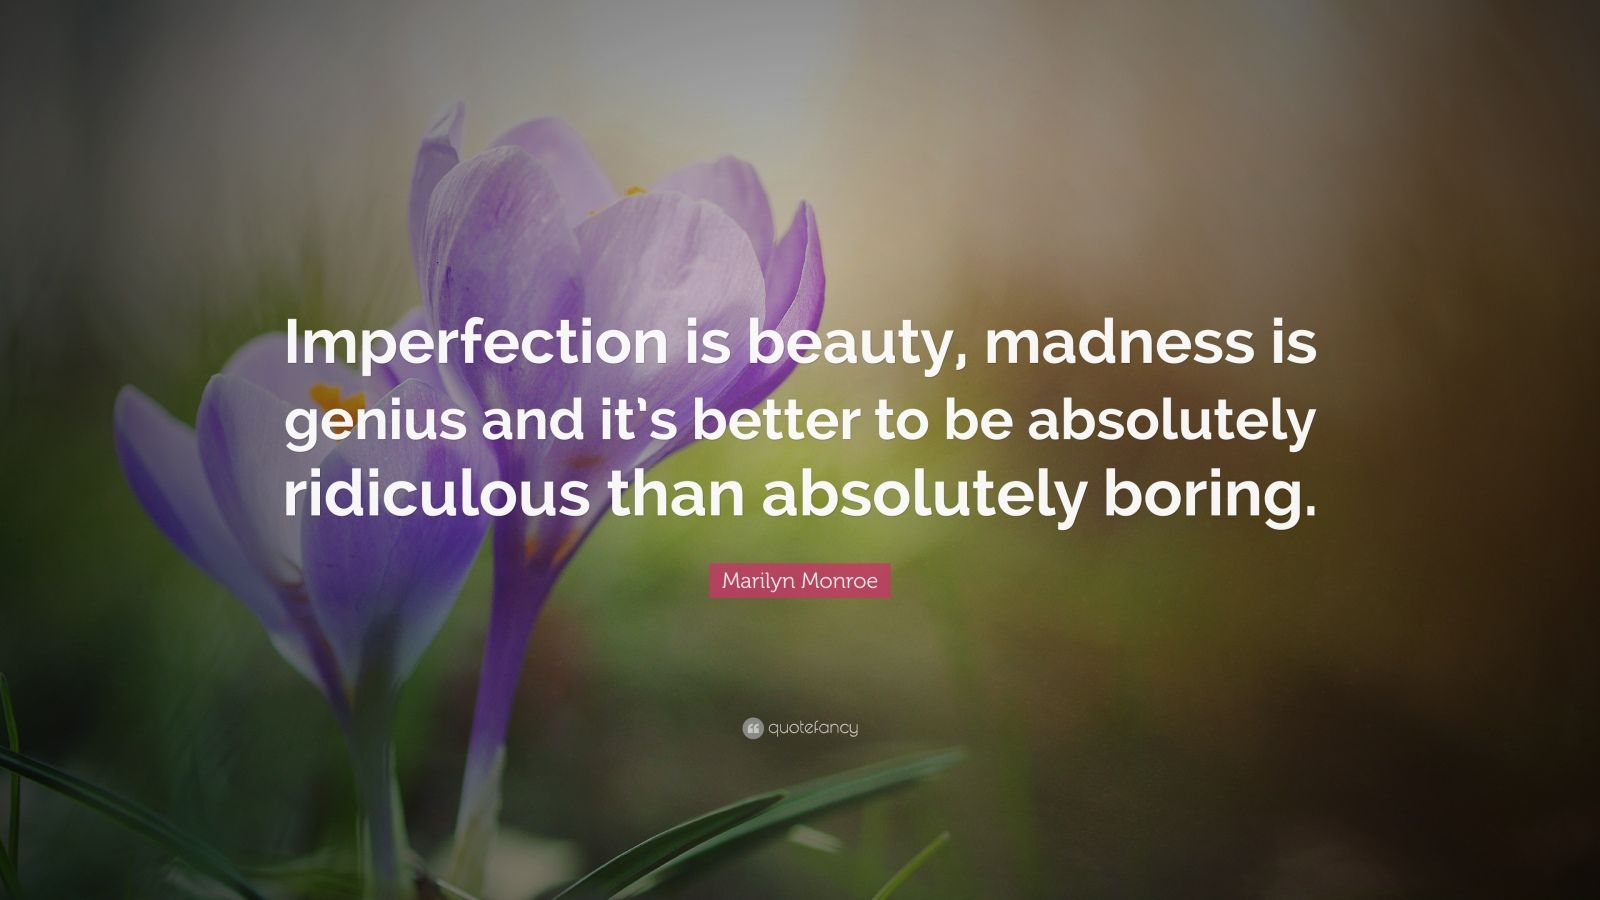 William Shakespeare Love Quotes Wallpaper Marilyn Monroe Quote Imperfection Is Beauty Madness Is